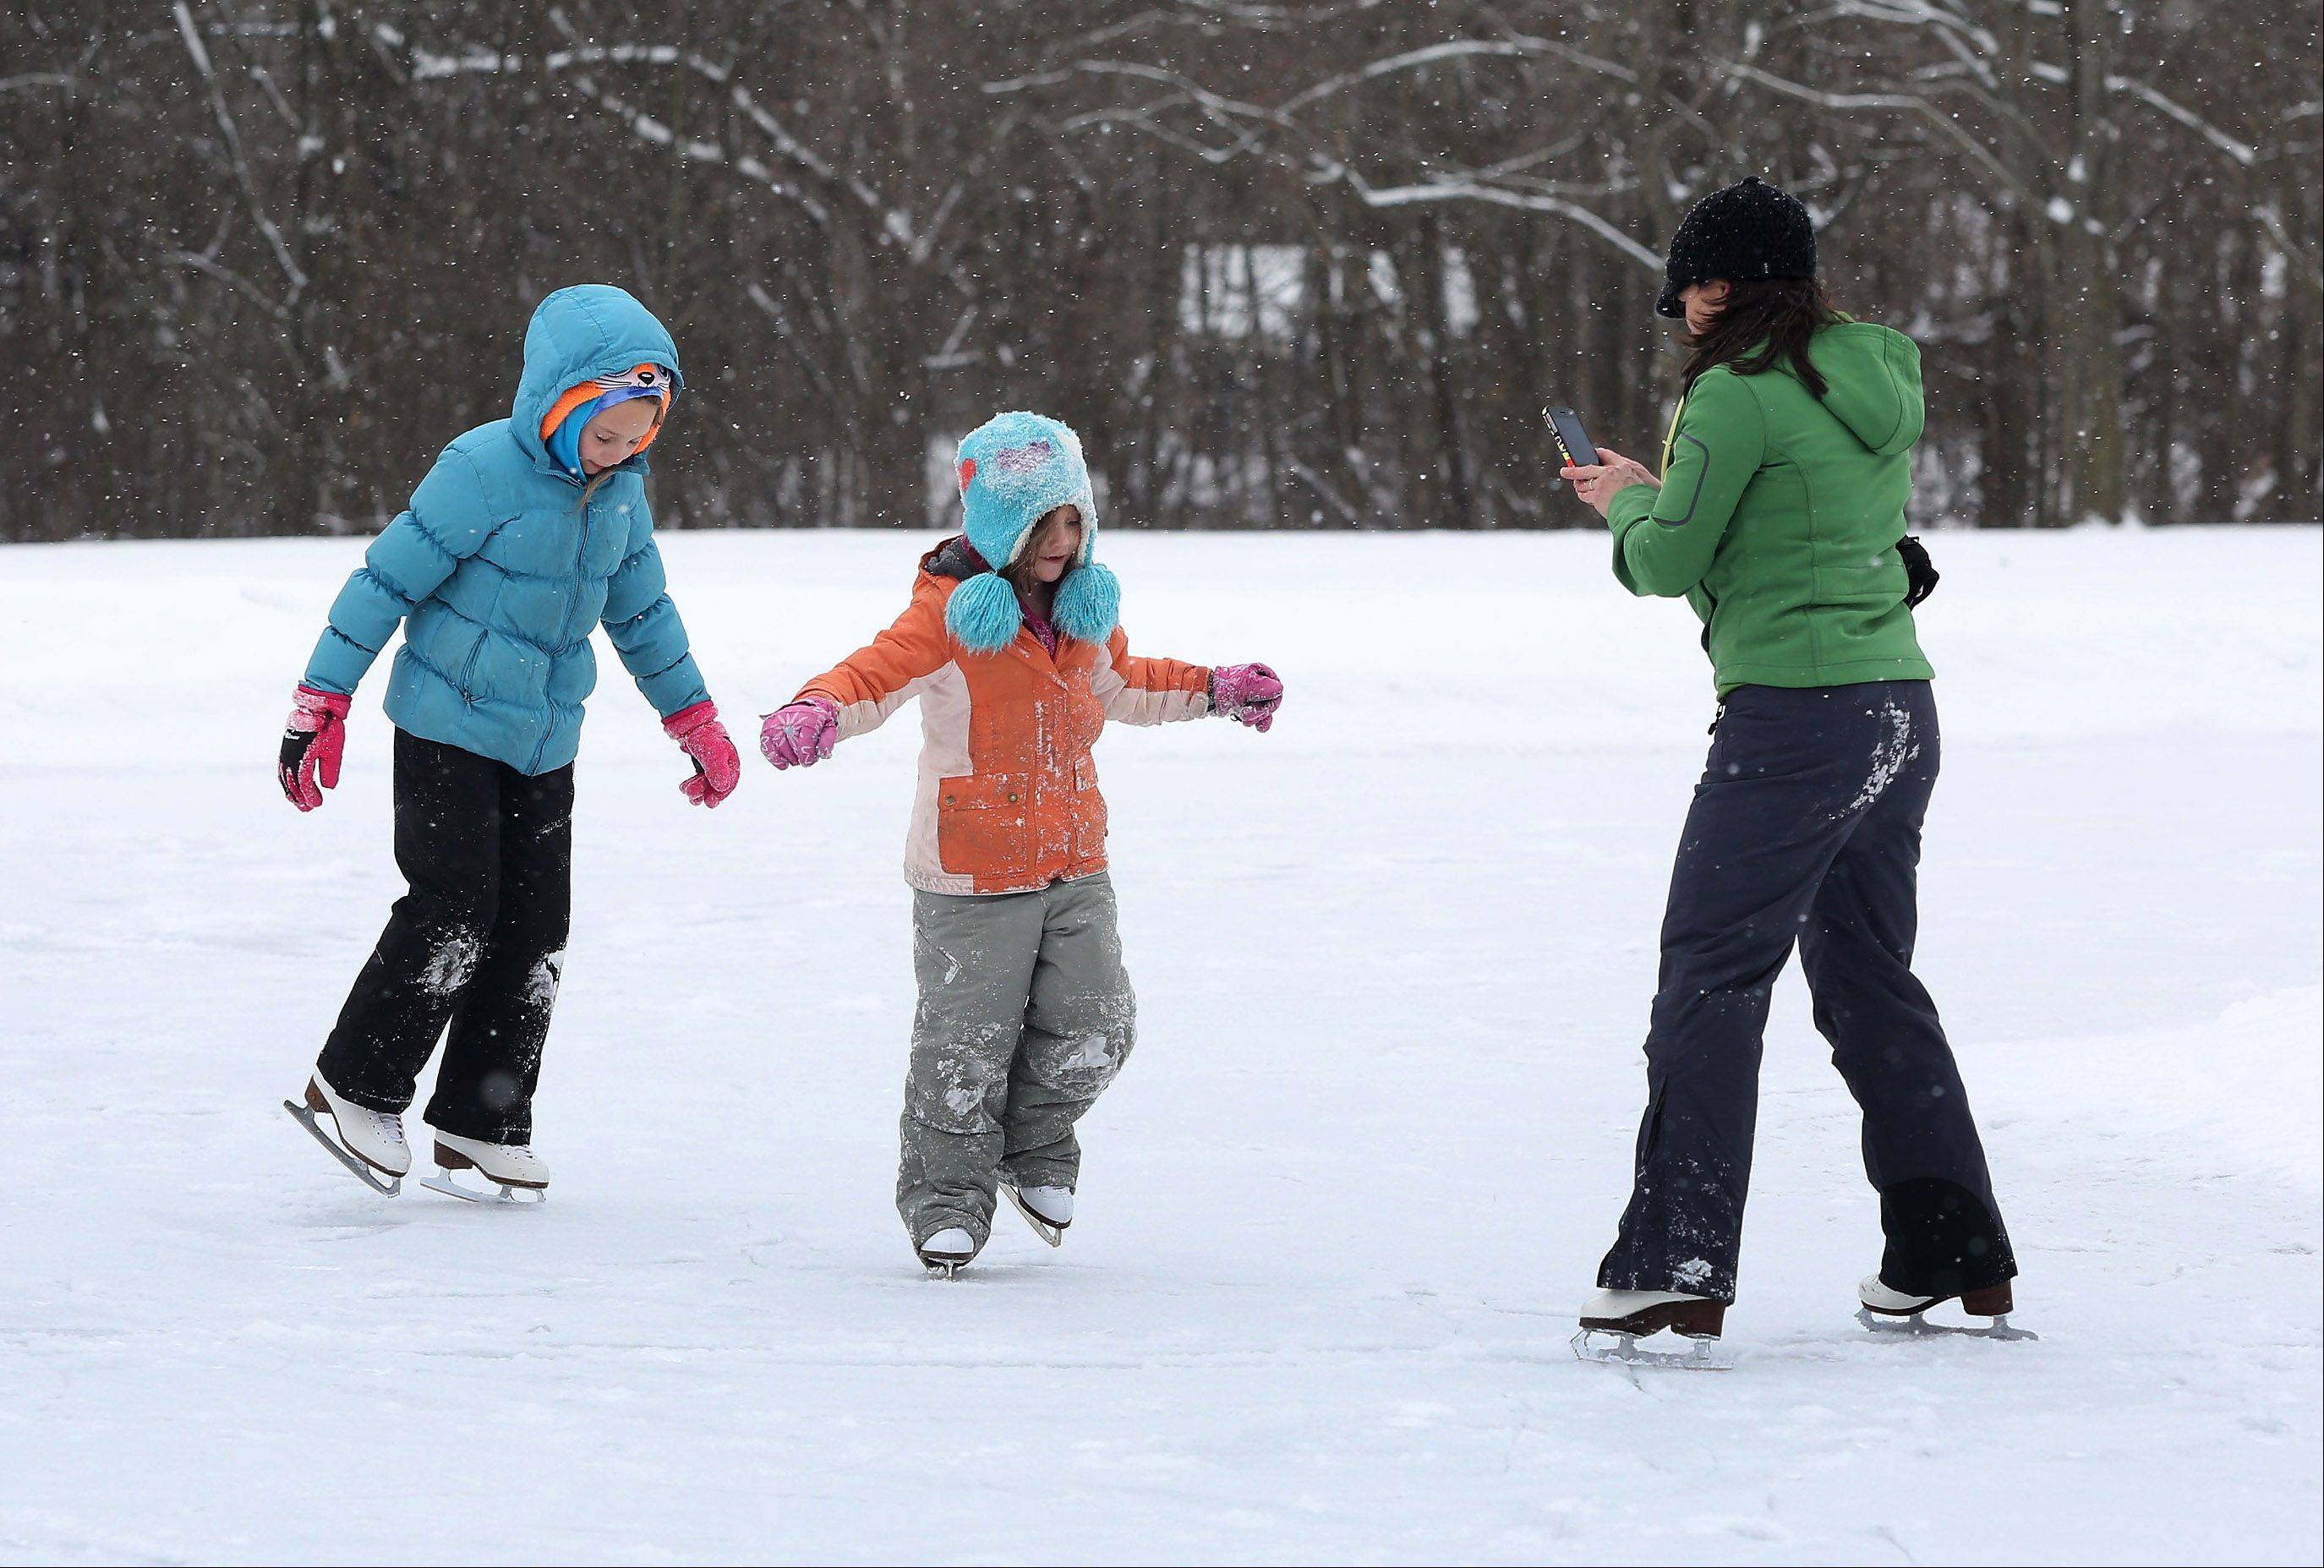 Libertyville resident Robin Frey videotapes her daughters, Jillian, 6, and Emaline, 9, while they ice skate at Adler Park in Libertyville on Thursday.